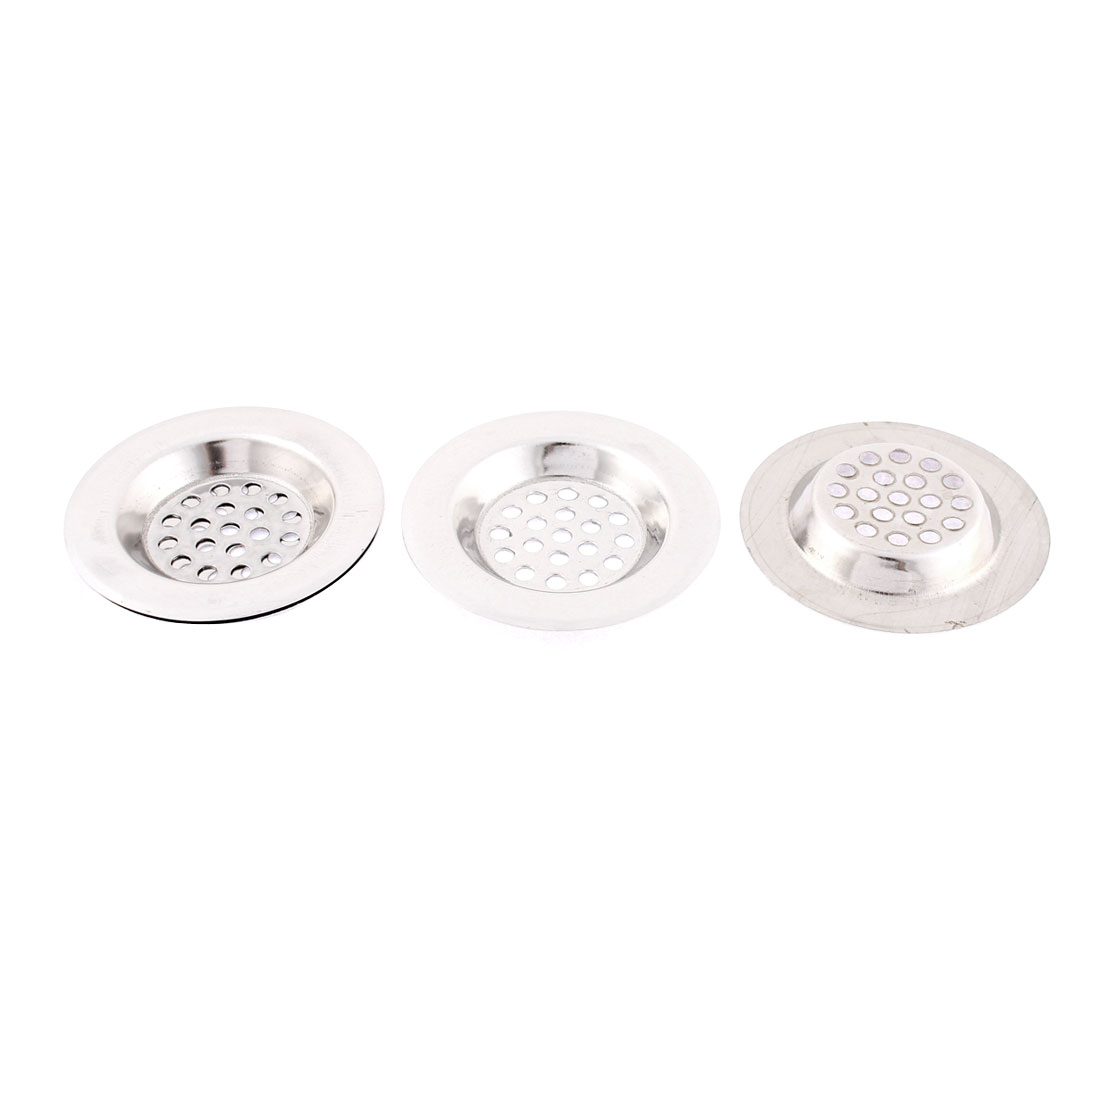 Bathroom Stainless Steel Sink Strainer Drainer Filter Stopper 65mm Dia 4 Pcs